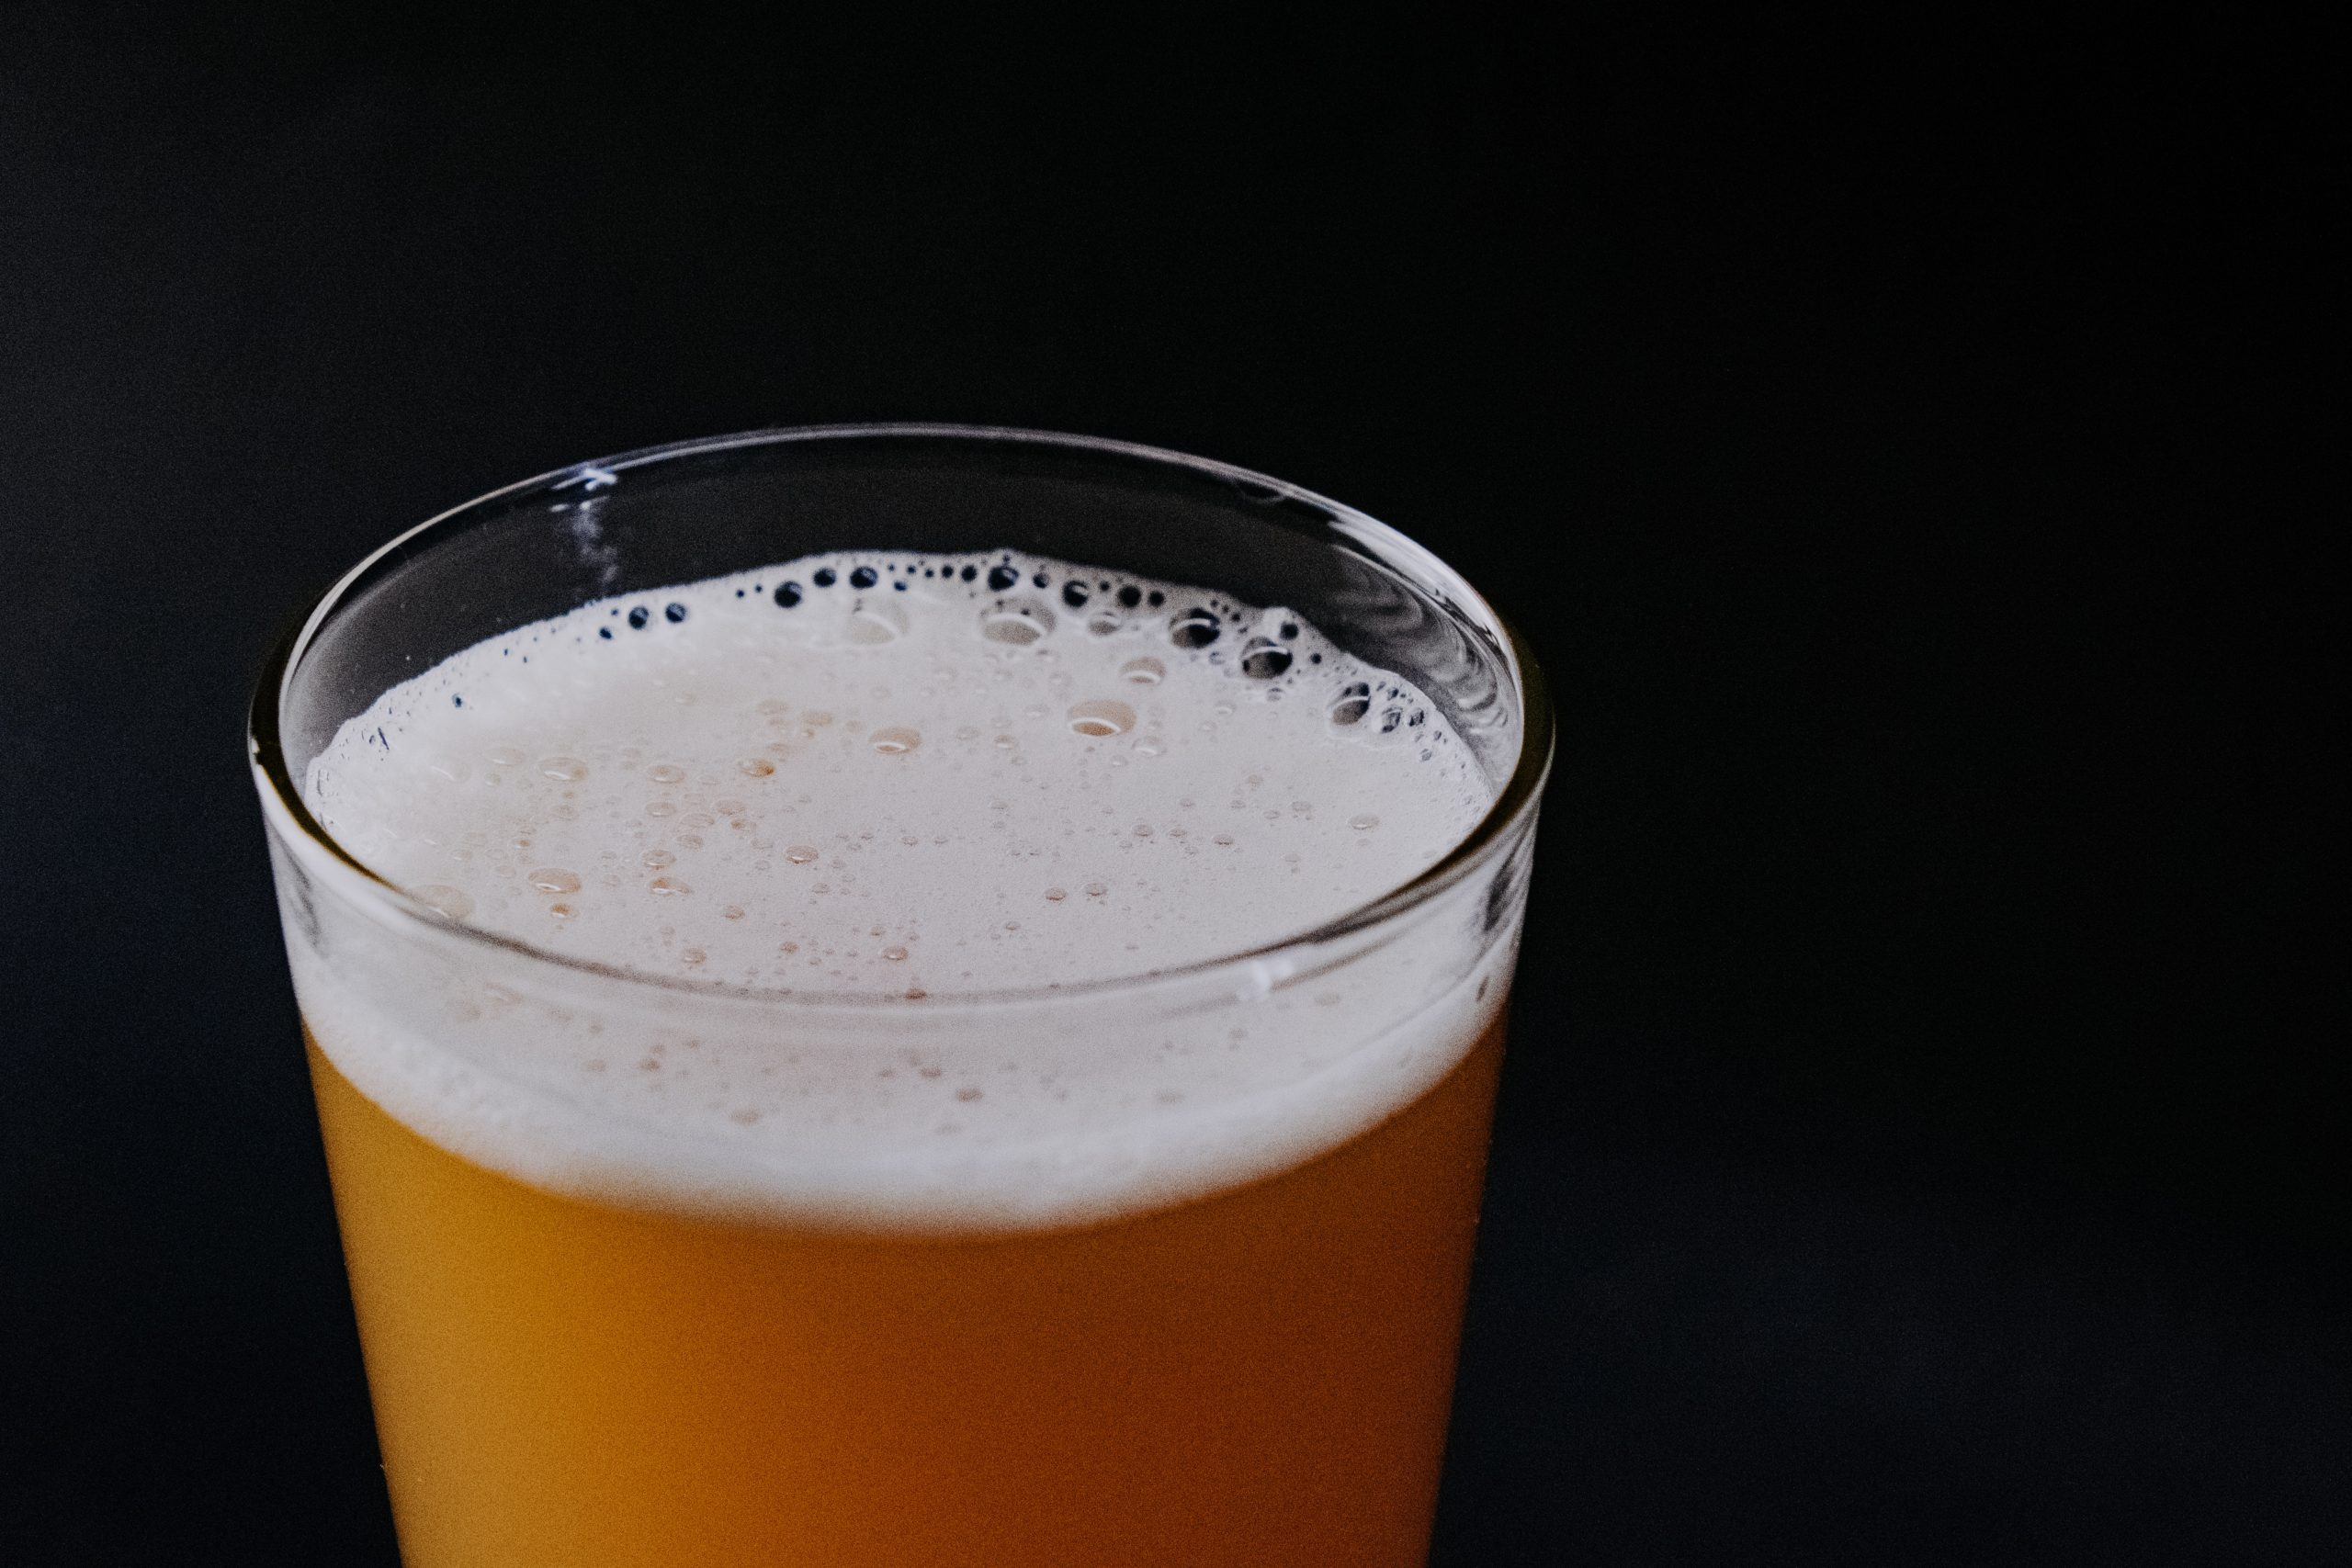 pint of beer with foam on top